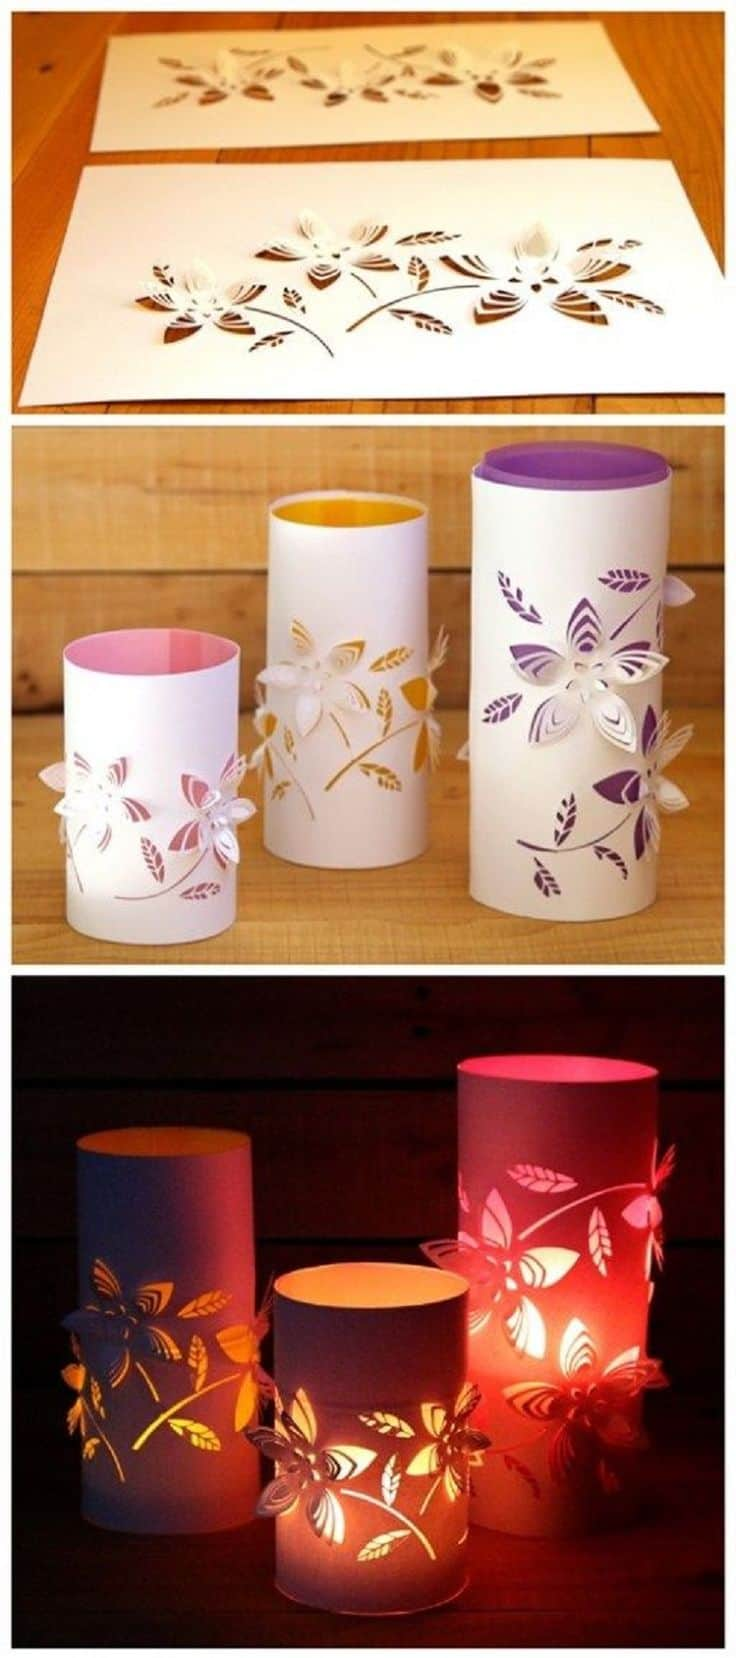 21 MAKE AND SELL DELICATE PAPER LANTERNS